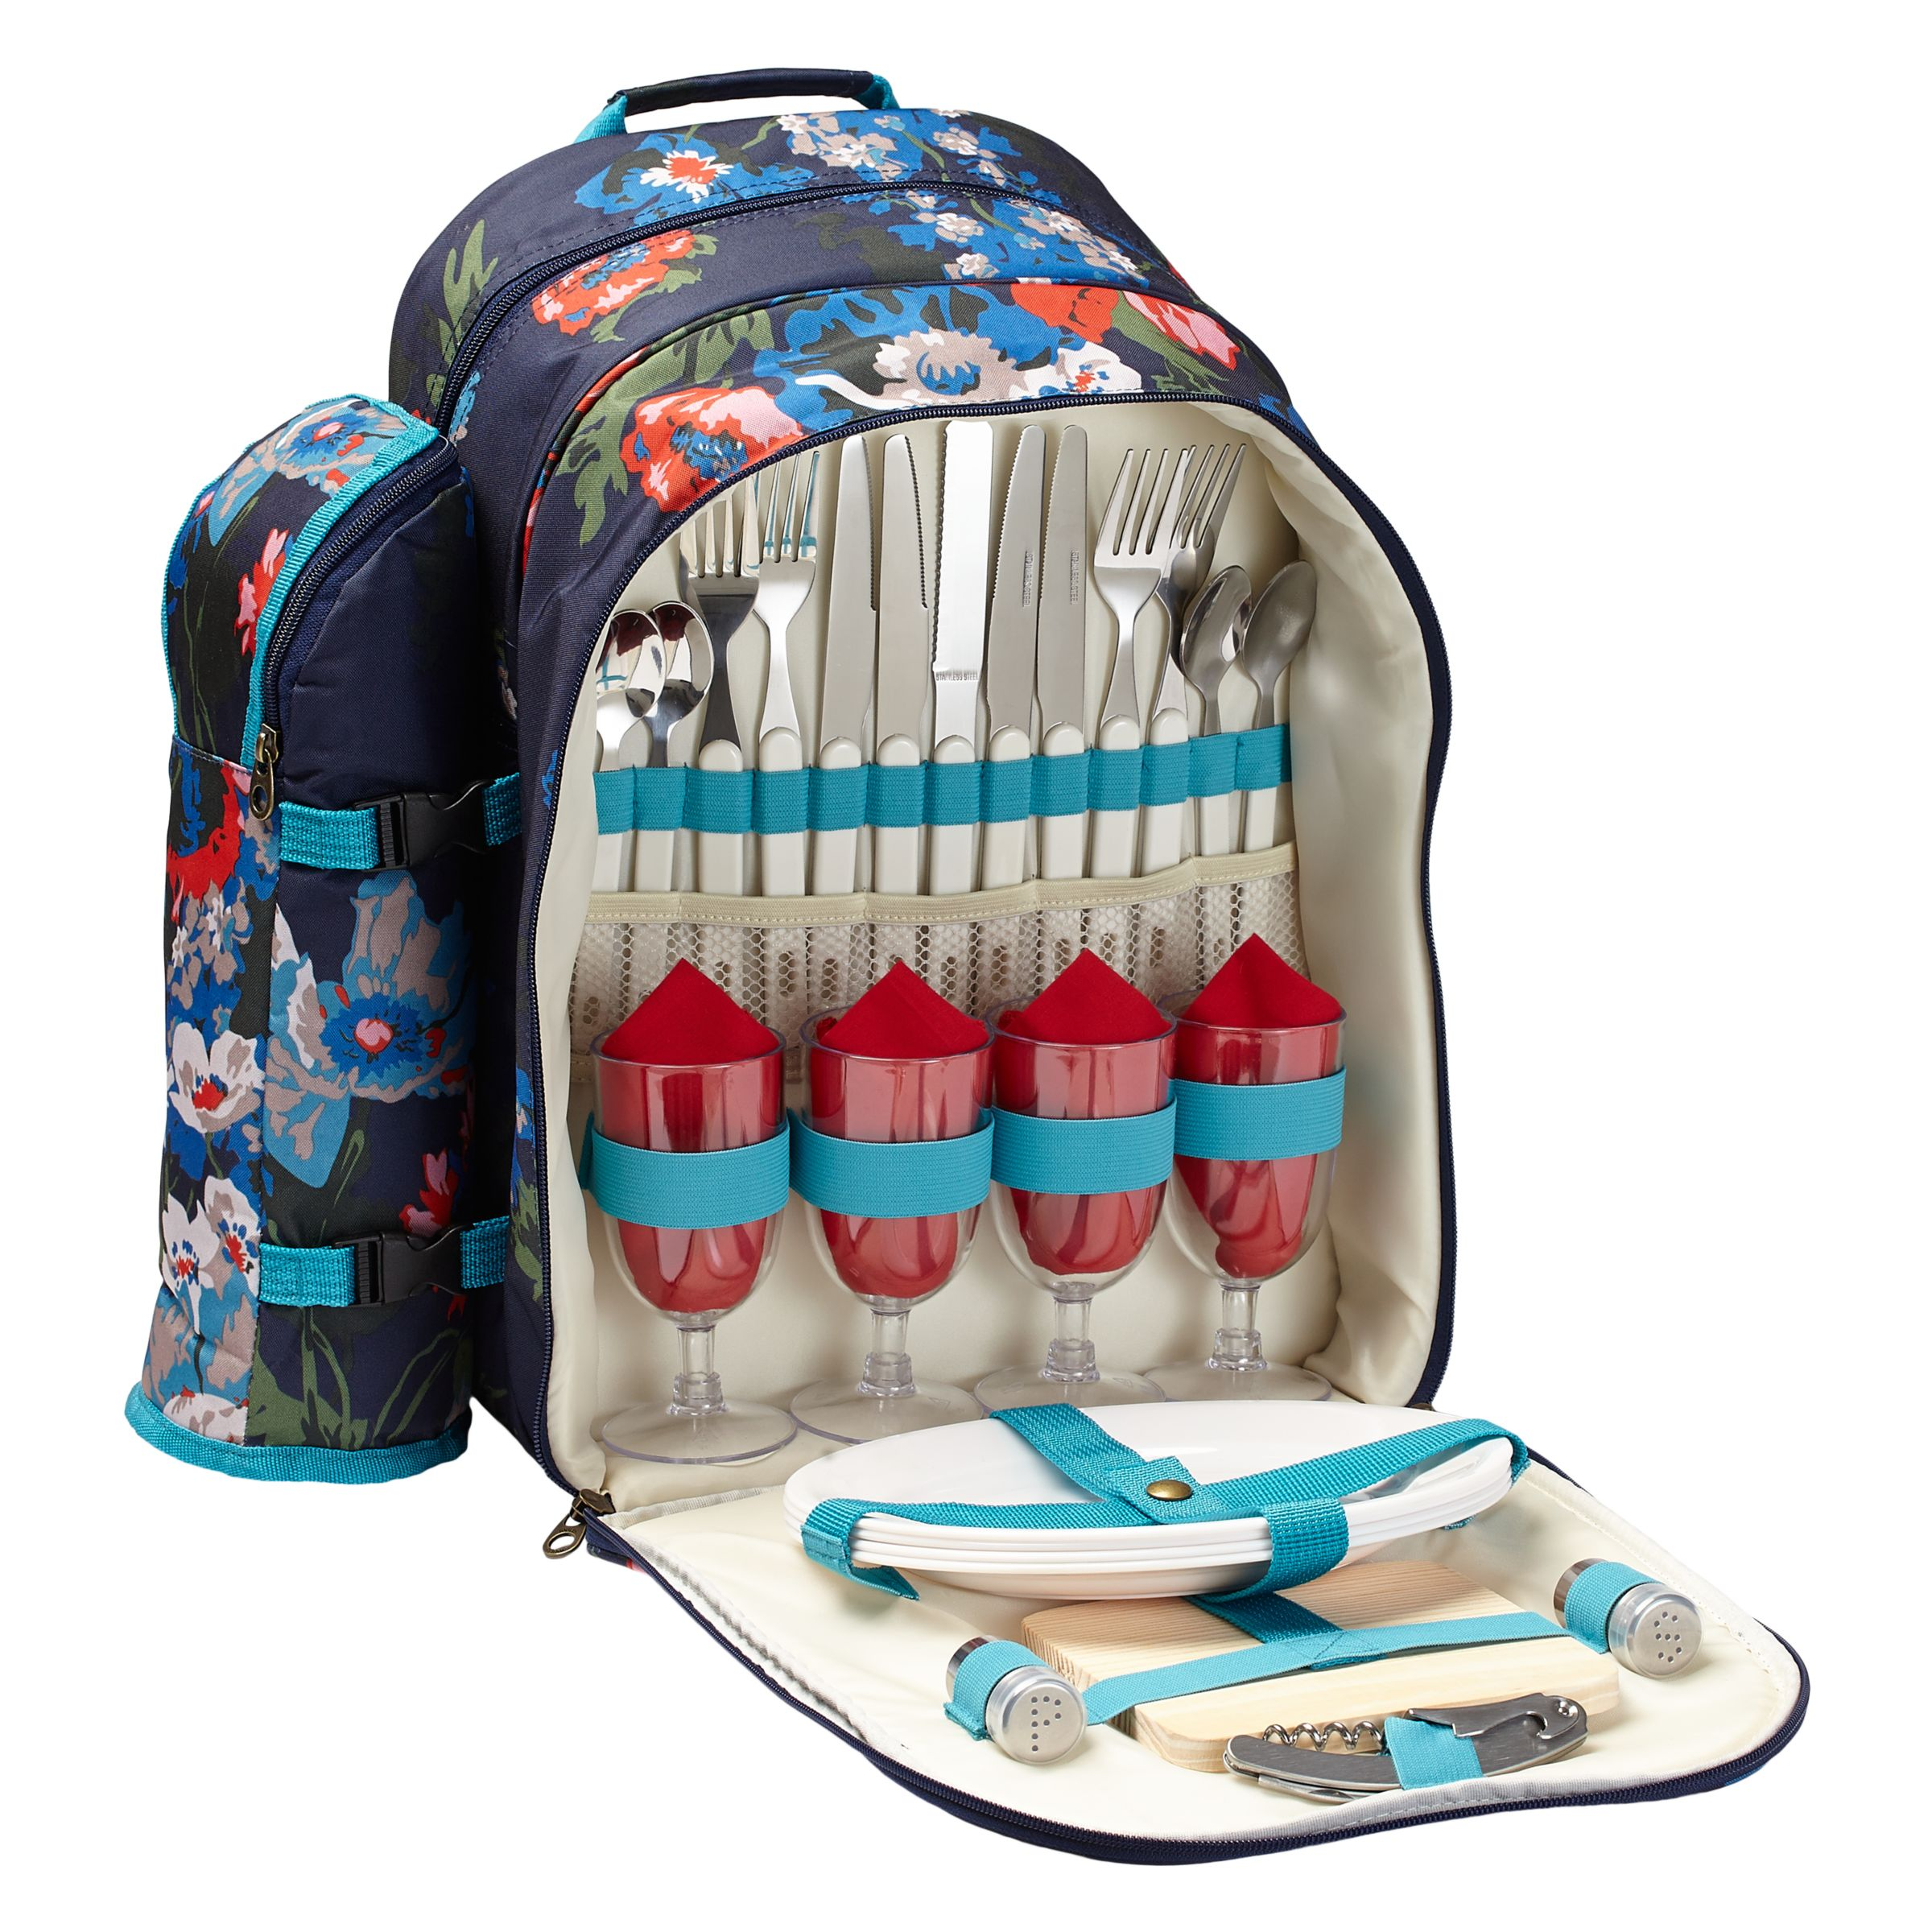 Joules Floral Filled Picnic Backpack, 4 Persons